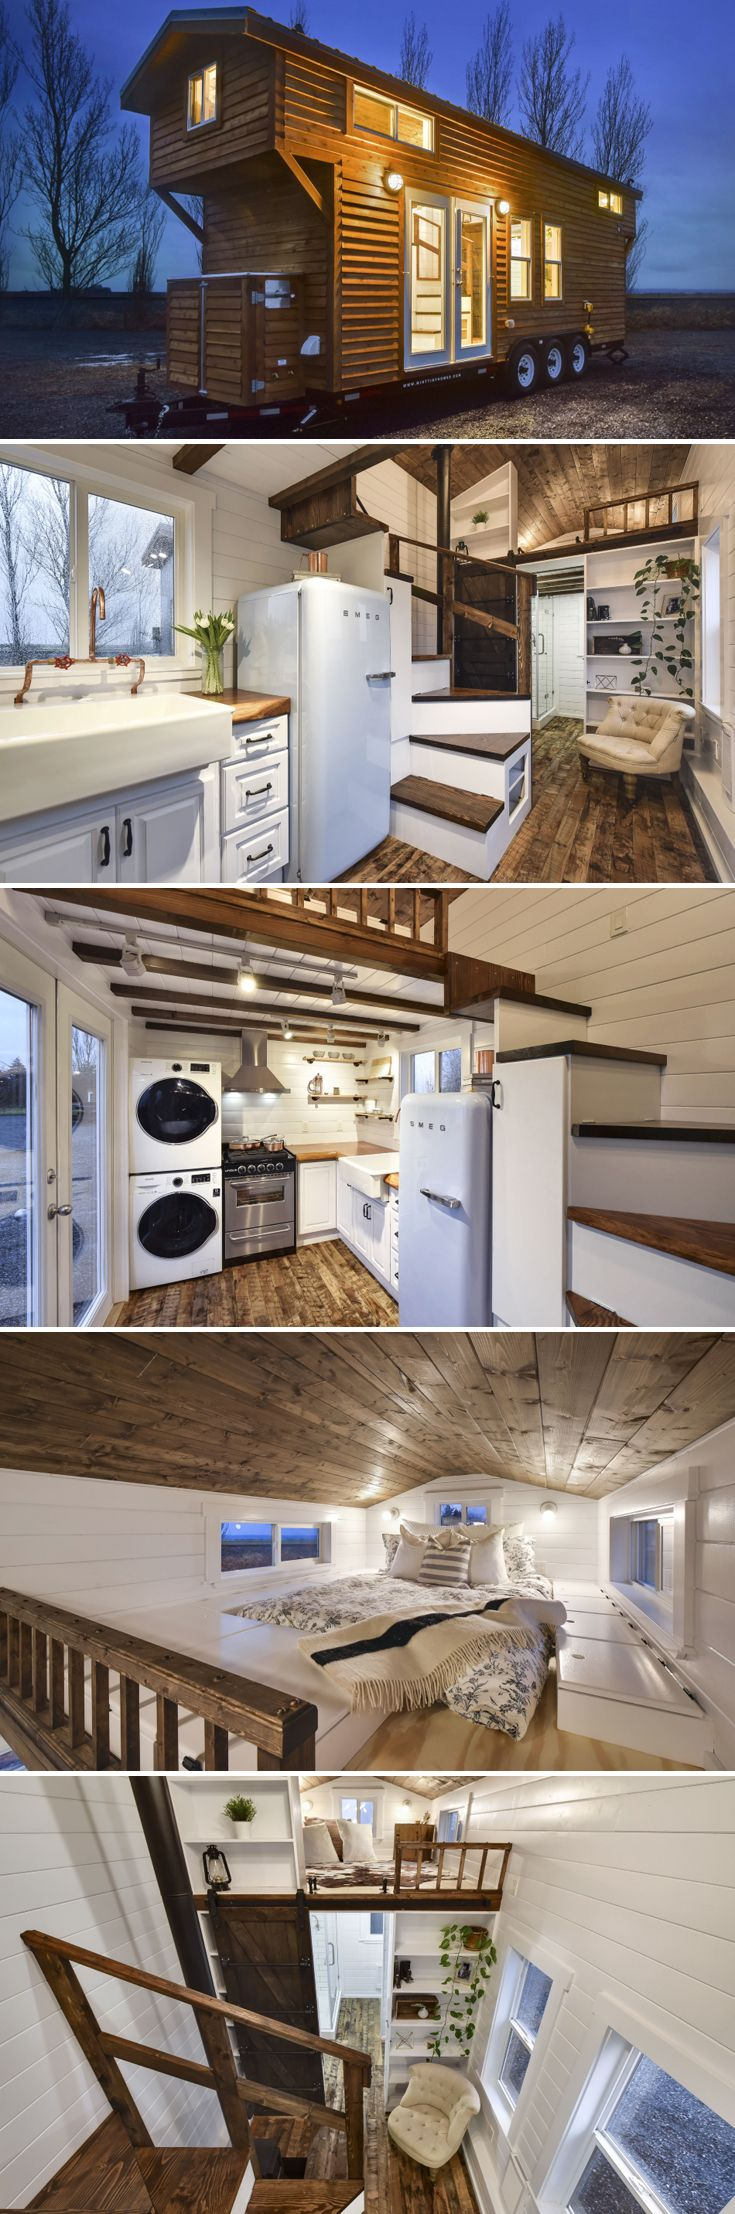 custom tiny 4 by mint tiny homes - Tiny House Trailer Interior